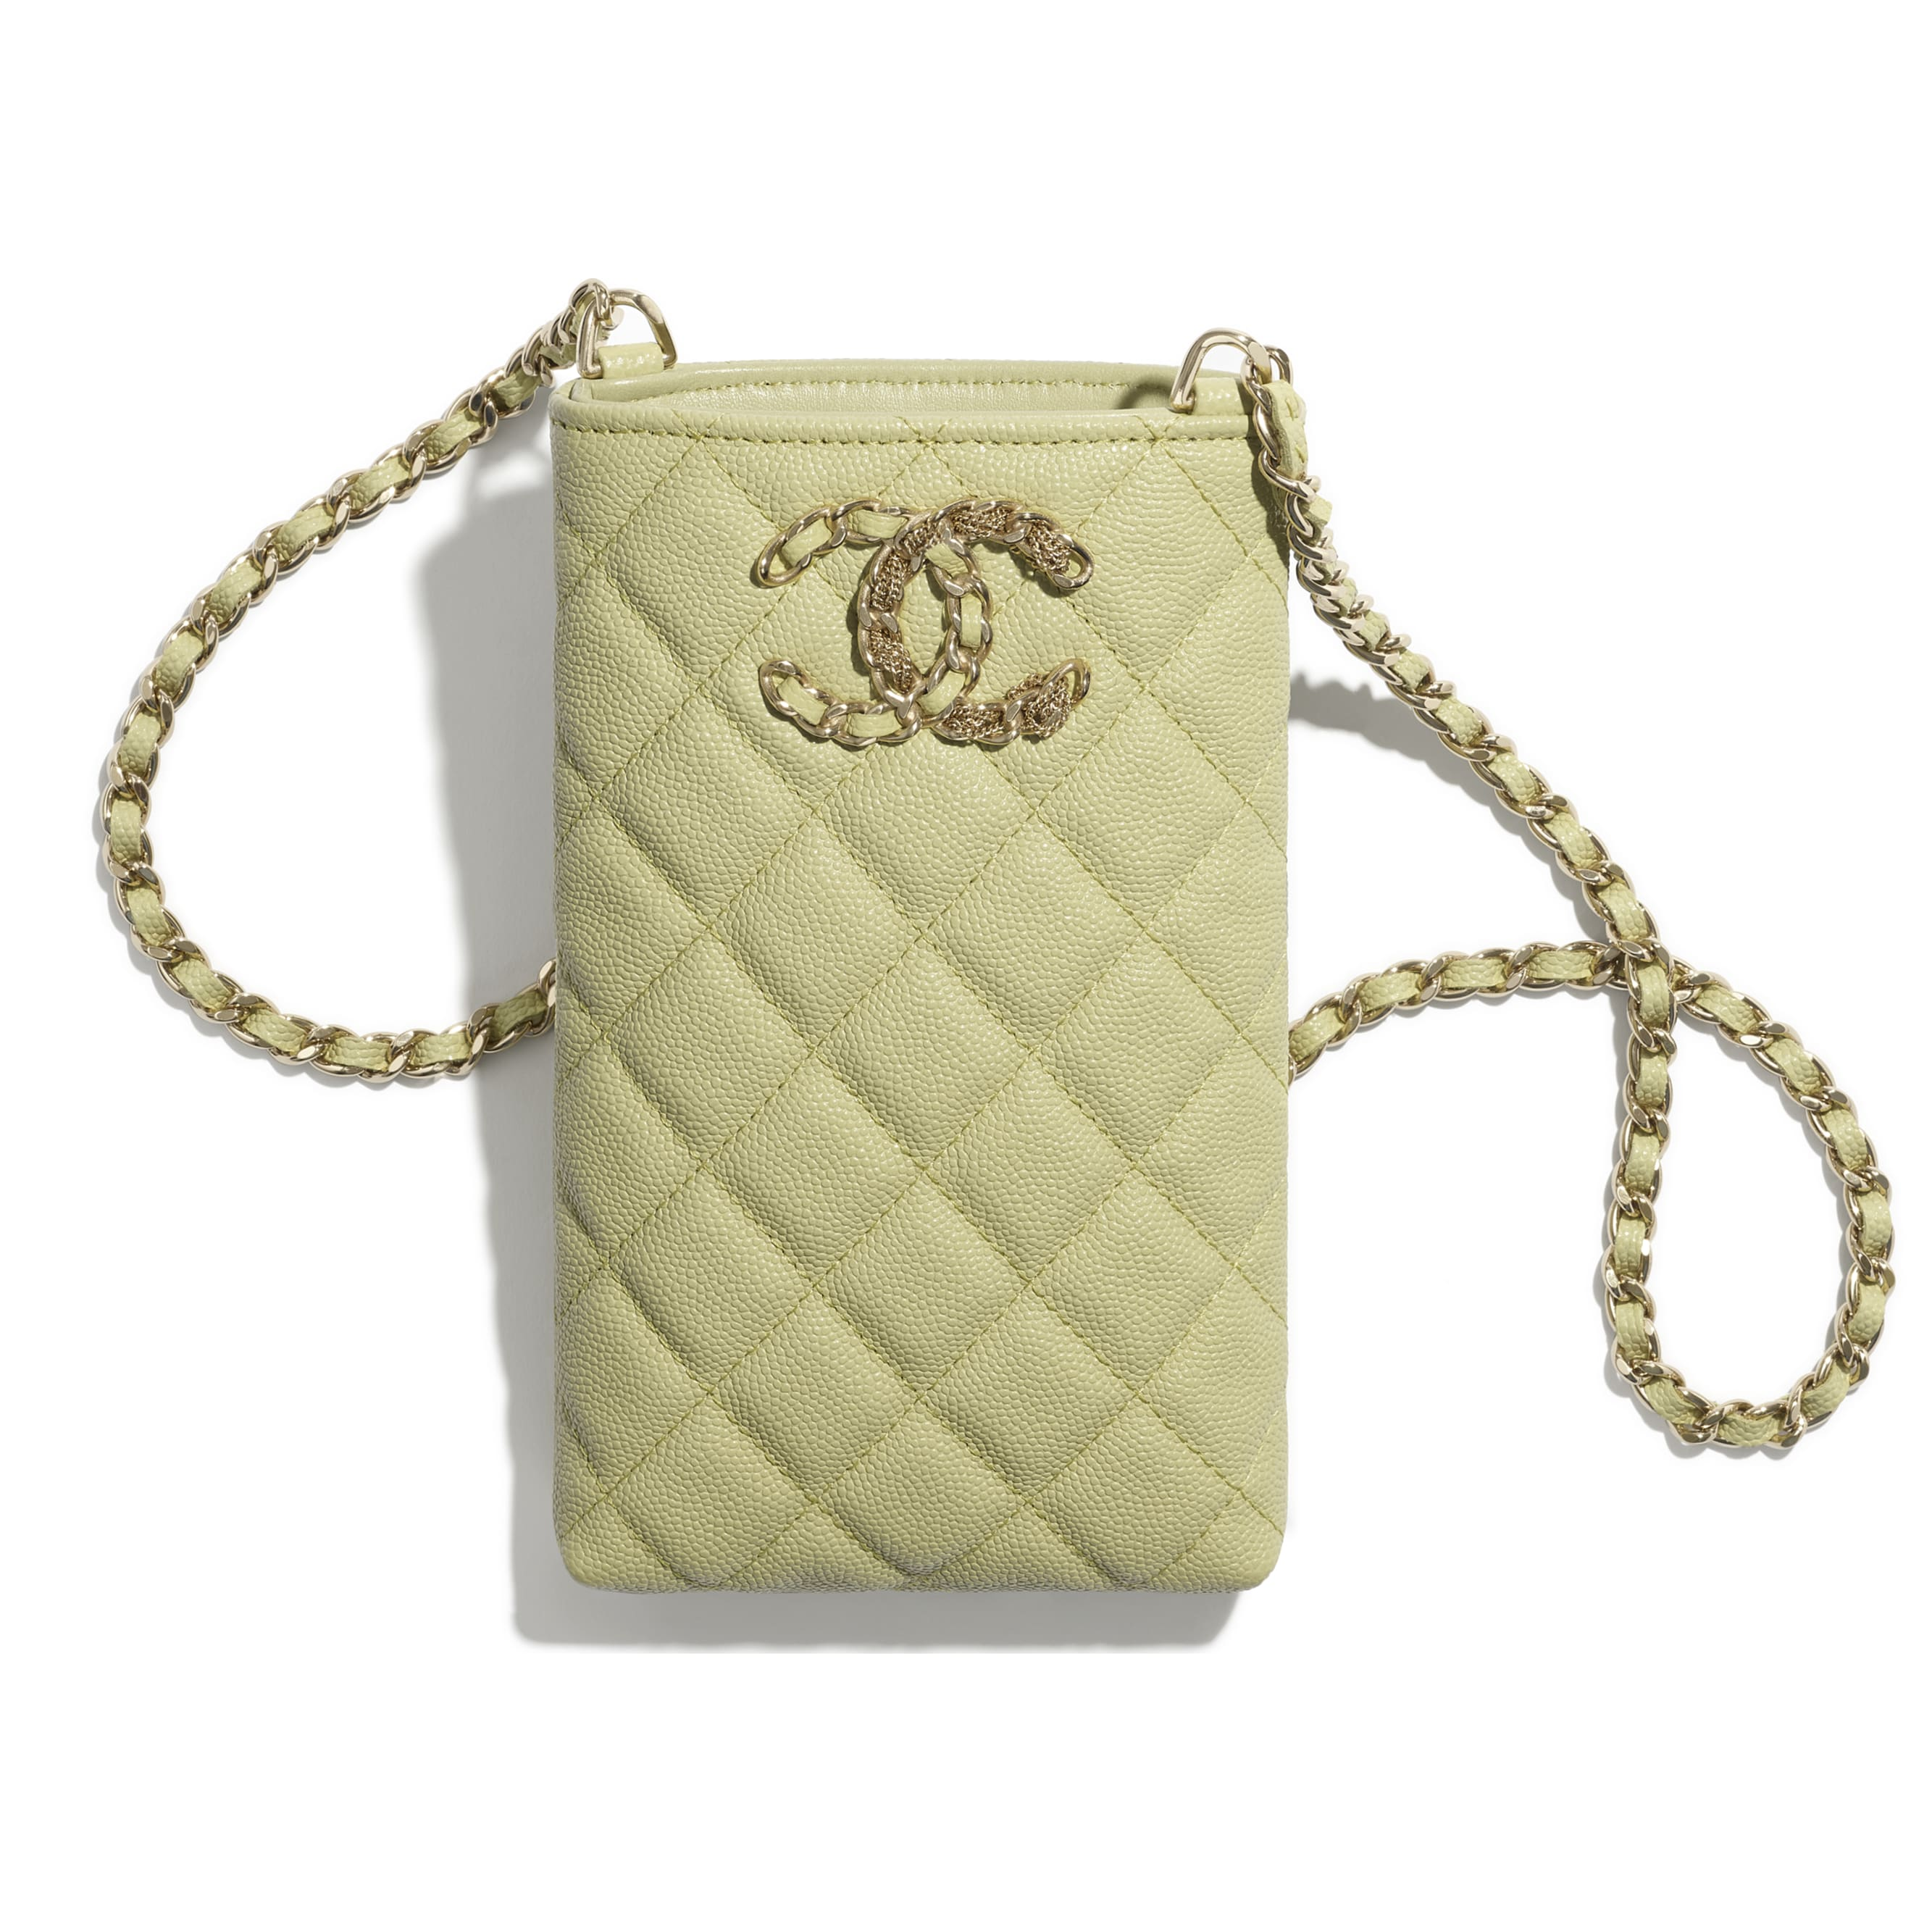 Phone Holder With Chain - Green - Grained Calfskin & Gold-Tone Metal - CHANEL - Other view - see standard sized version